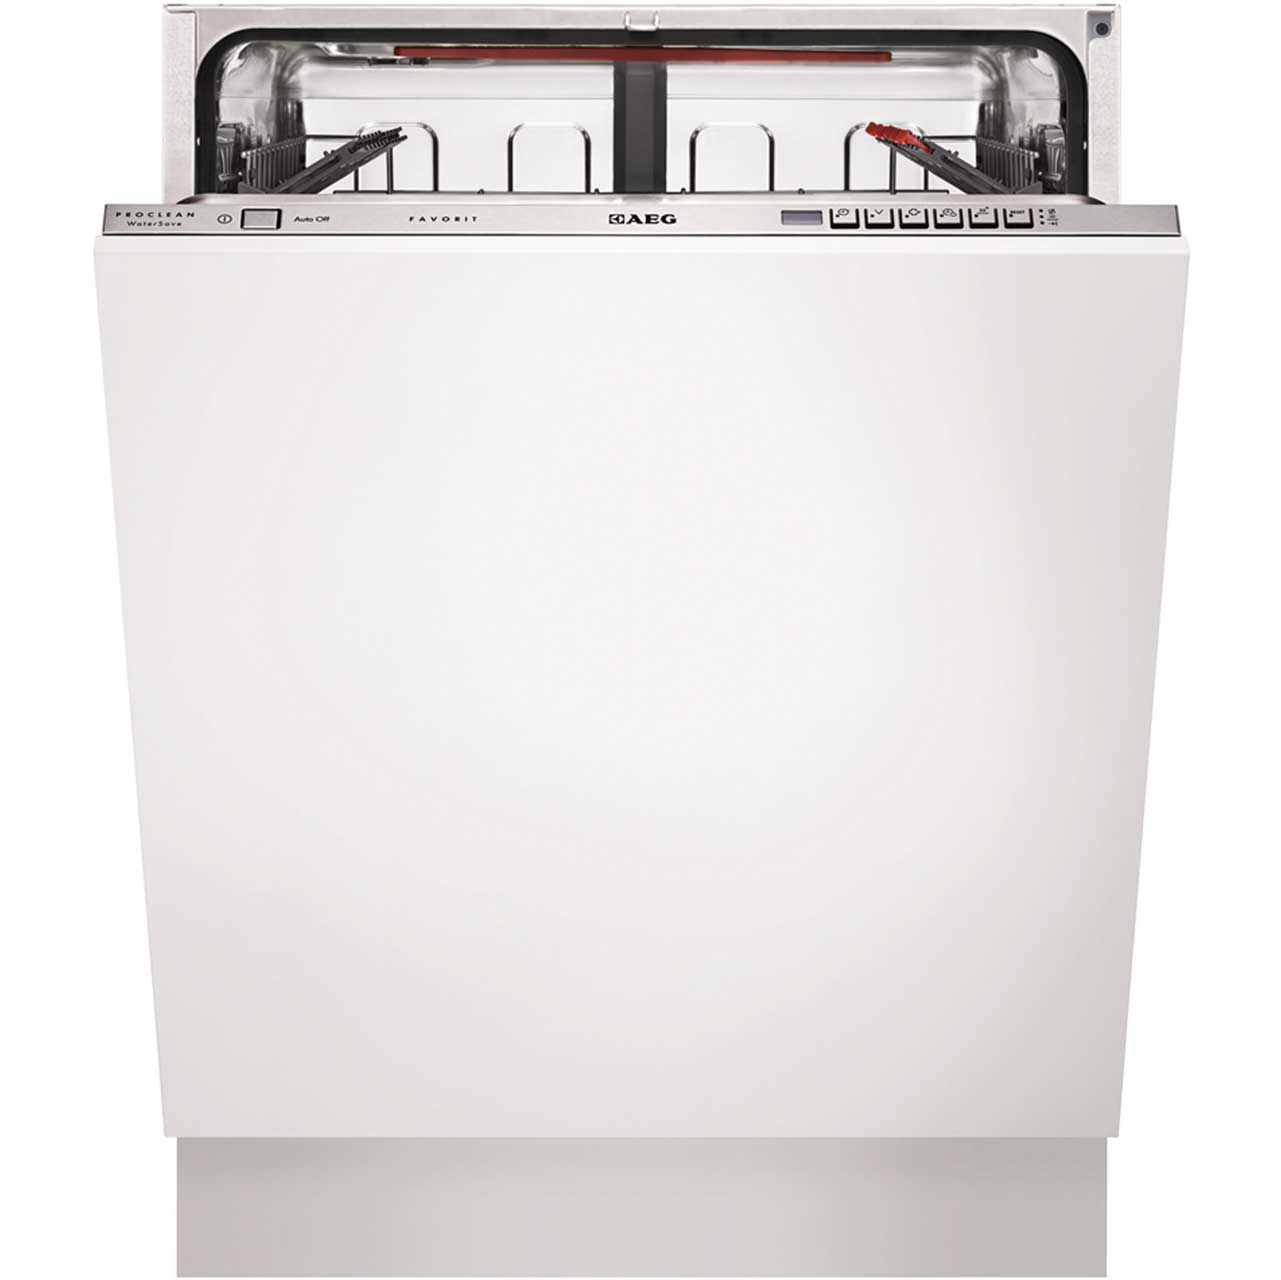 AEG Favorit F67622VI0P Integrated Dishwasher in White